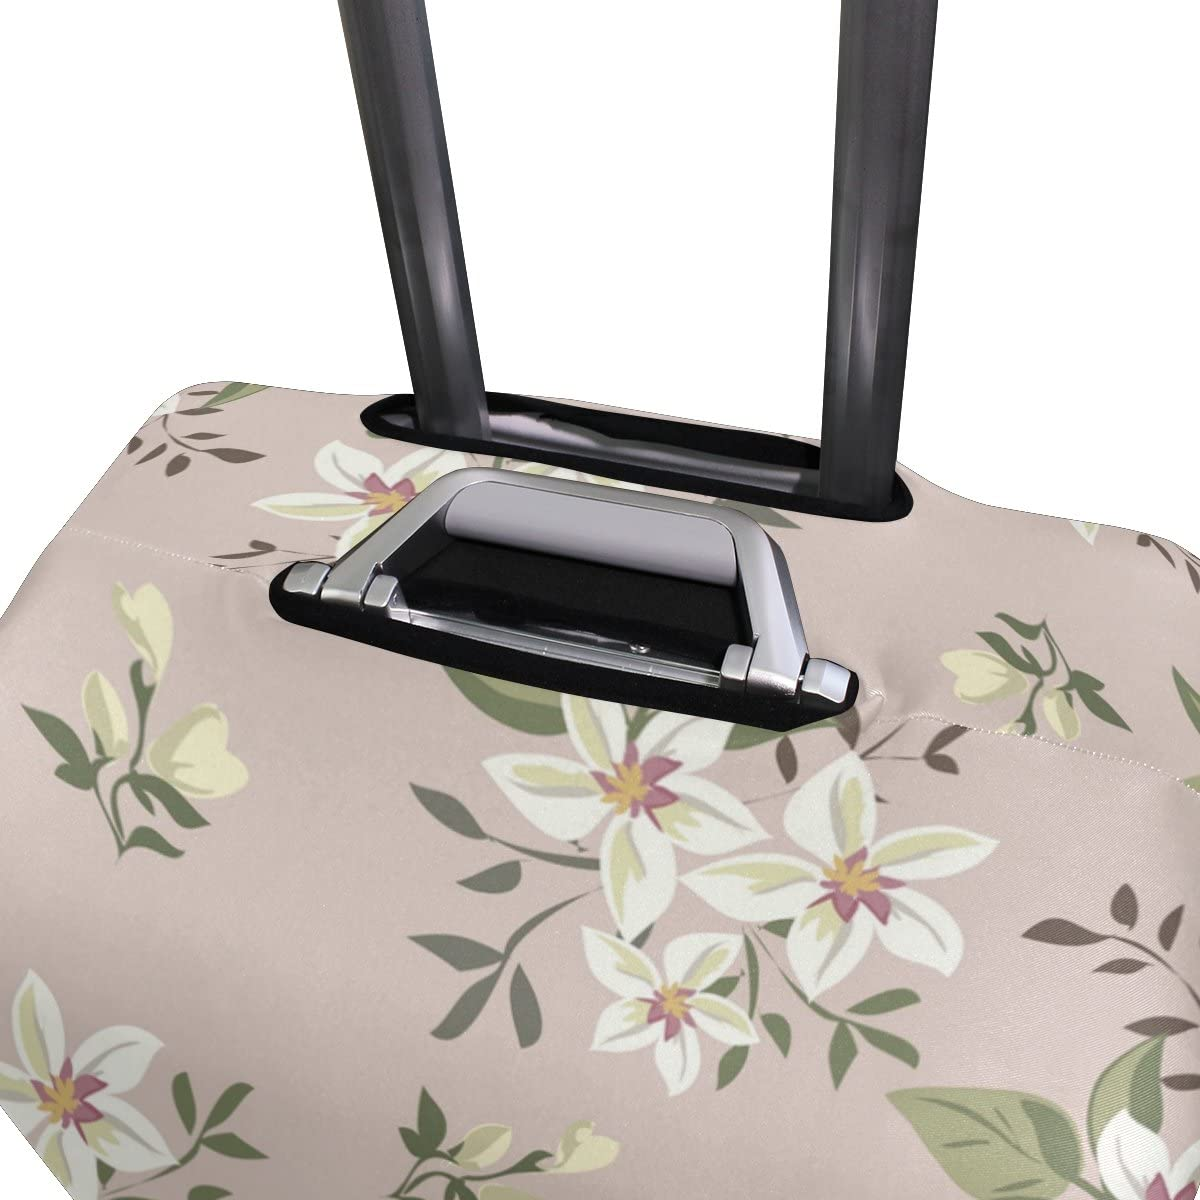 OREZI Luggage Protector Vintage Flower Pattern Travel Luggage Elastic Cover Suitcase Washable and Durable Anti-Scratch Stretchy Case Cover Fits 18-32 Inches